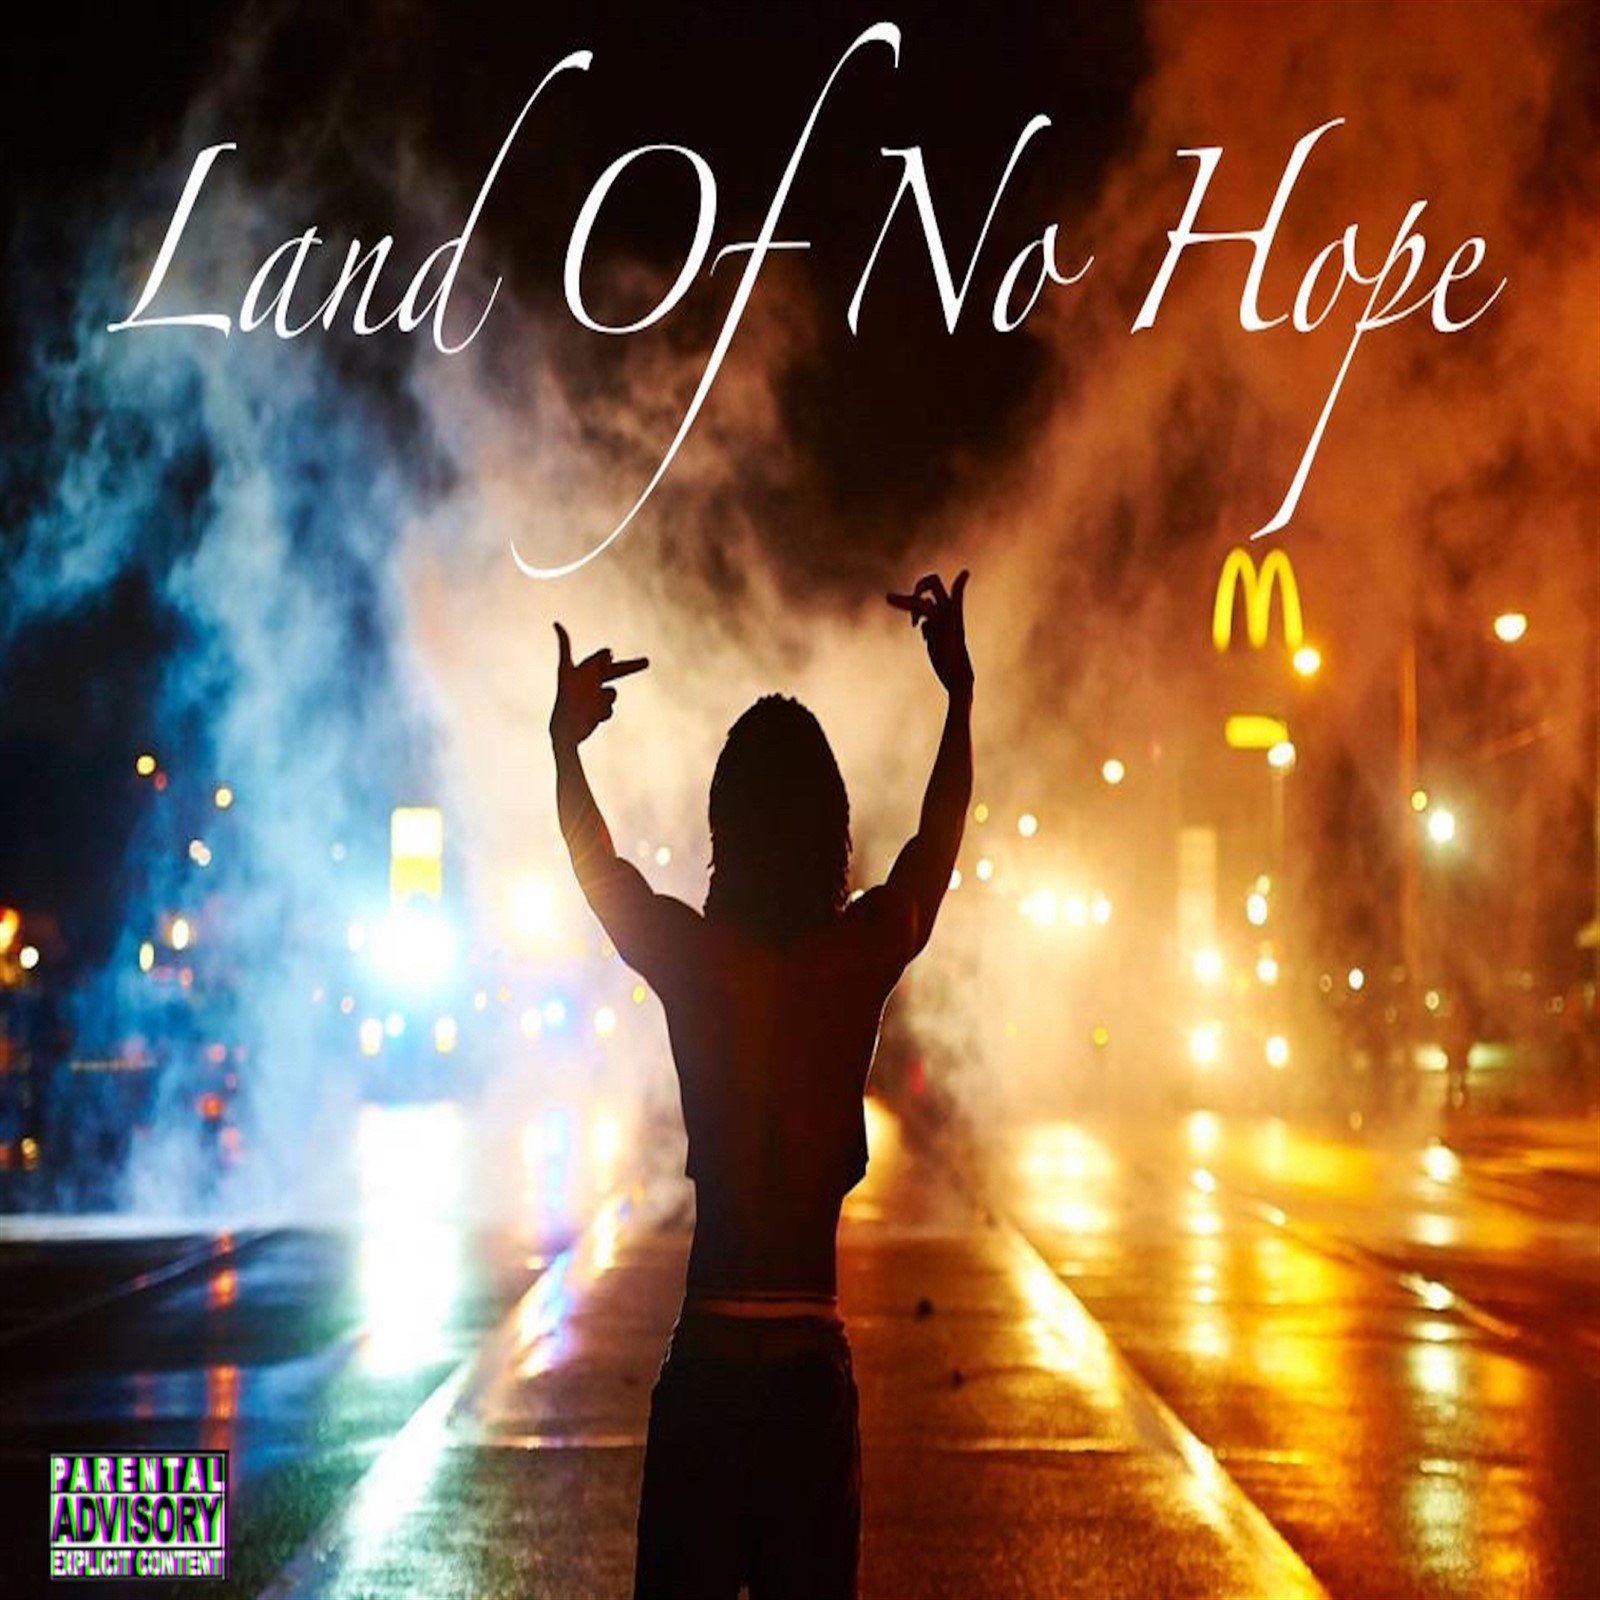 Land of No Hope (feat. Aries Pereira)